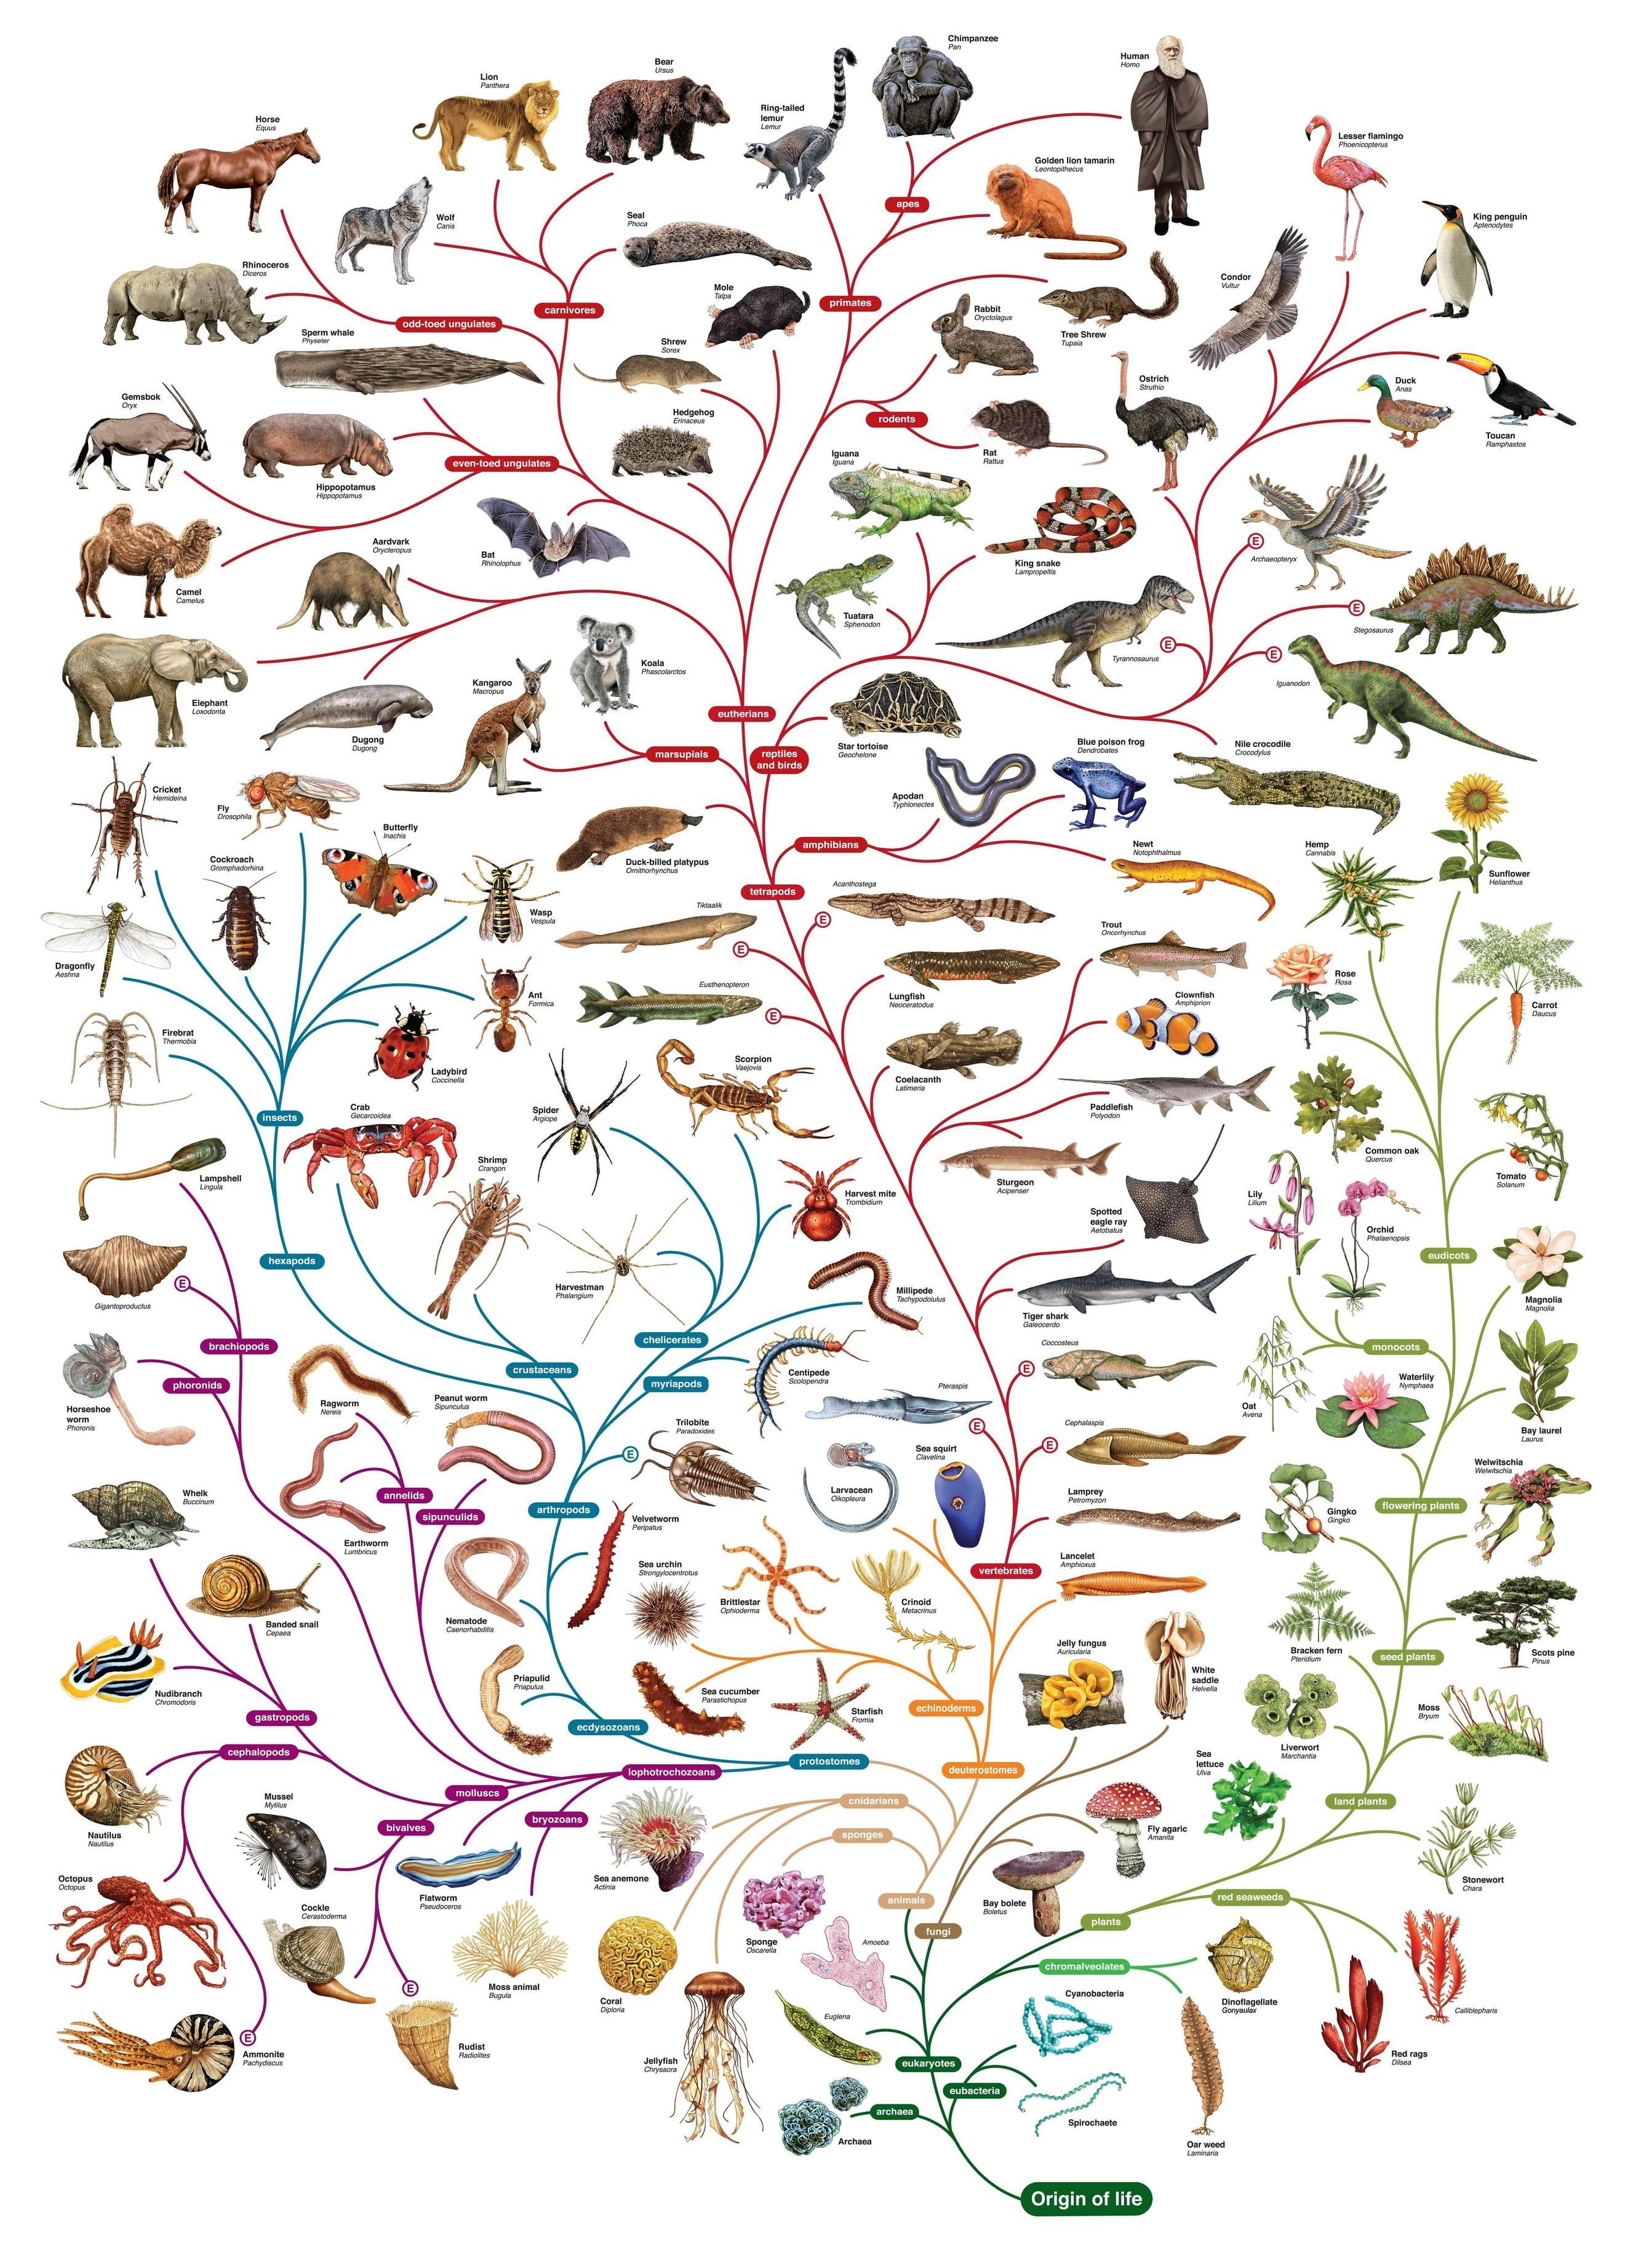 Follow Evolution And Explore The Variety Of Life On The Planet With The Tree Of Life Phylogenetic Tree Darwin Tree Of Life Science Biology